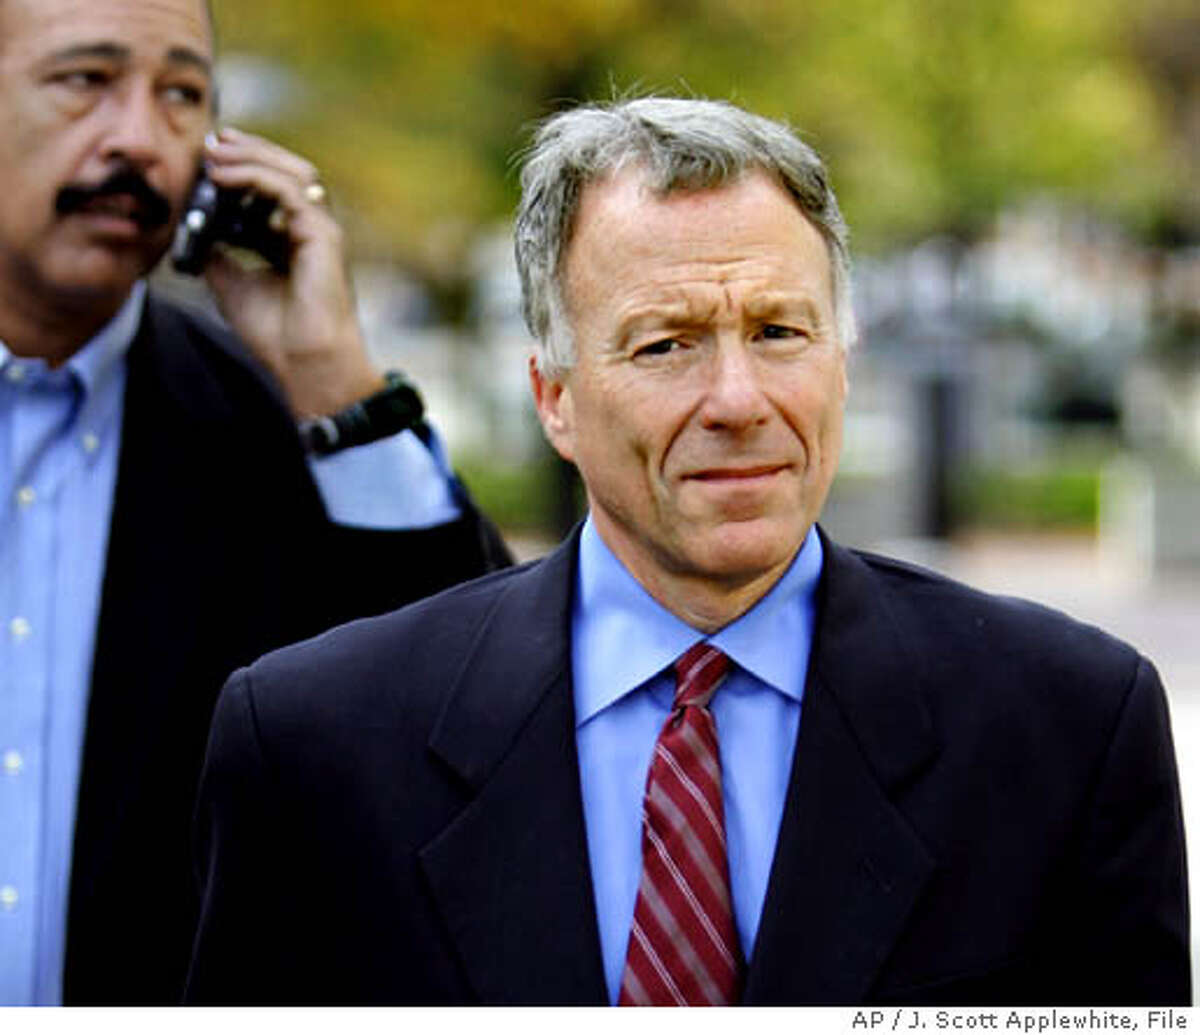 """** FILE** I. Lewis """"Scooter"""" Libby, Vice President Dick Cheney's former chief of staff, walks to the U.S. District Court in Washington, in this Nov. 16, 2005 file photo, accompanied by his attorney Theodore V. Wells Jr., at rear. Libby told prosecutors President Bush authorized the leak of sensitive intelligence information to a reporter, according to a new court filing in the CIA leak case. (AP Photo/J. Scott Applewhite)"""